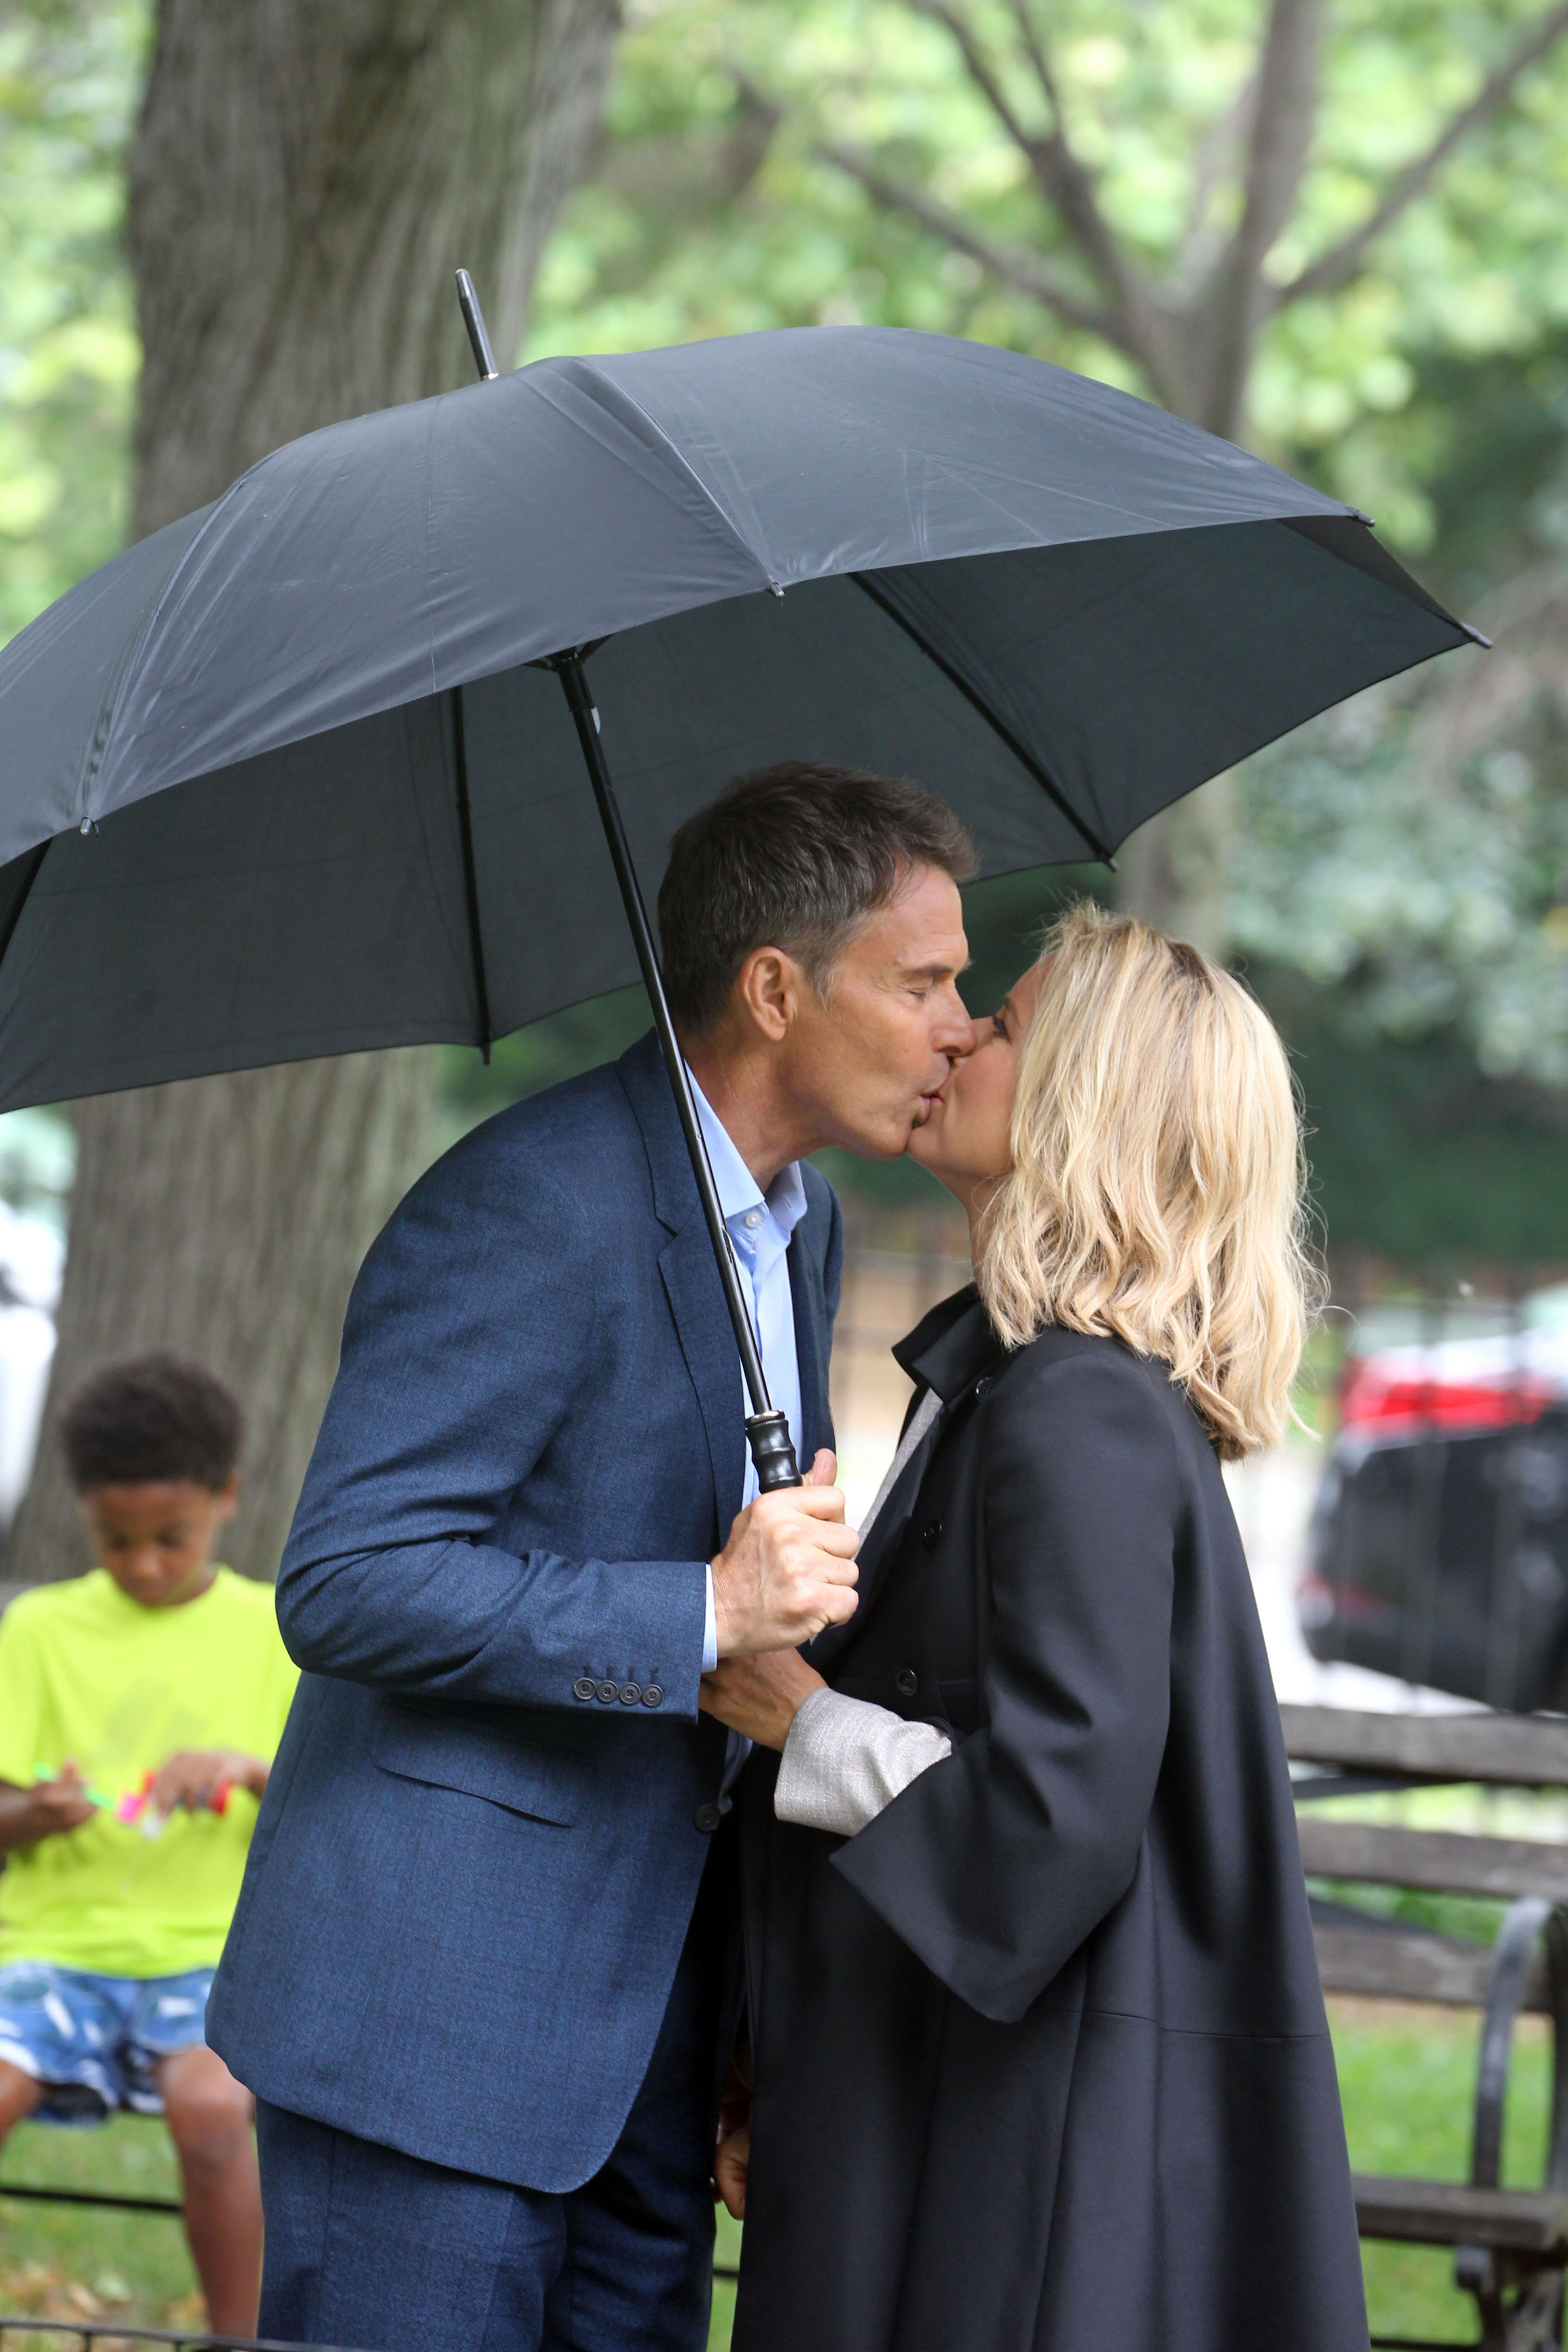 NEW YORK, NY - JULY 09:  Tea Leoni, Tim Daly real life couple playing married couple filming CBS-TV's 'Madame Secretary.' on July 9, 2015 in New York City.  (Photo by Steve Sands/GC Images)